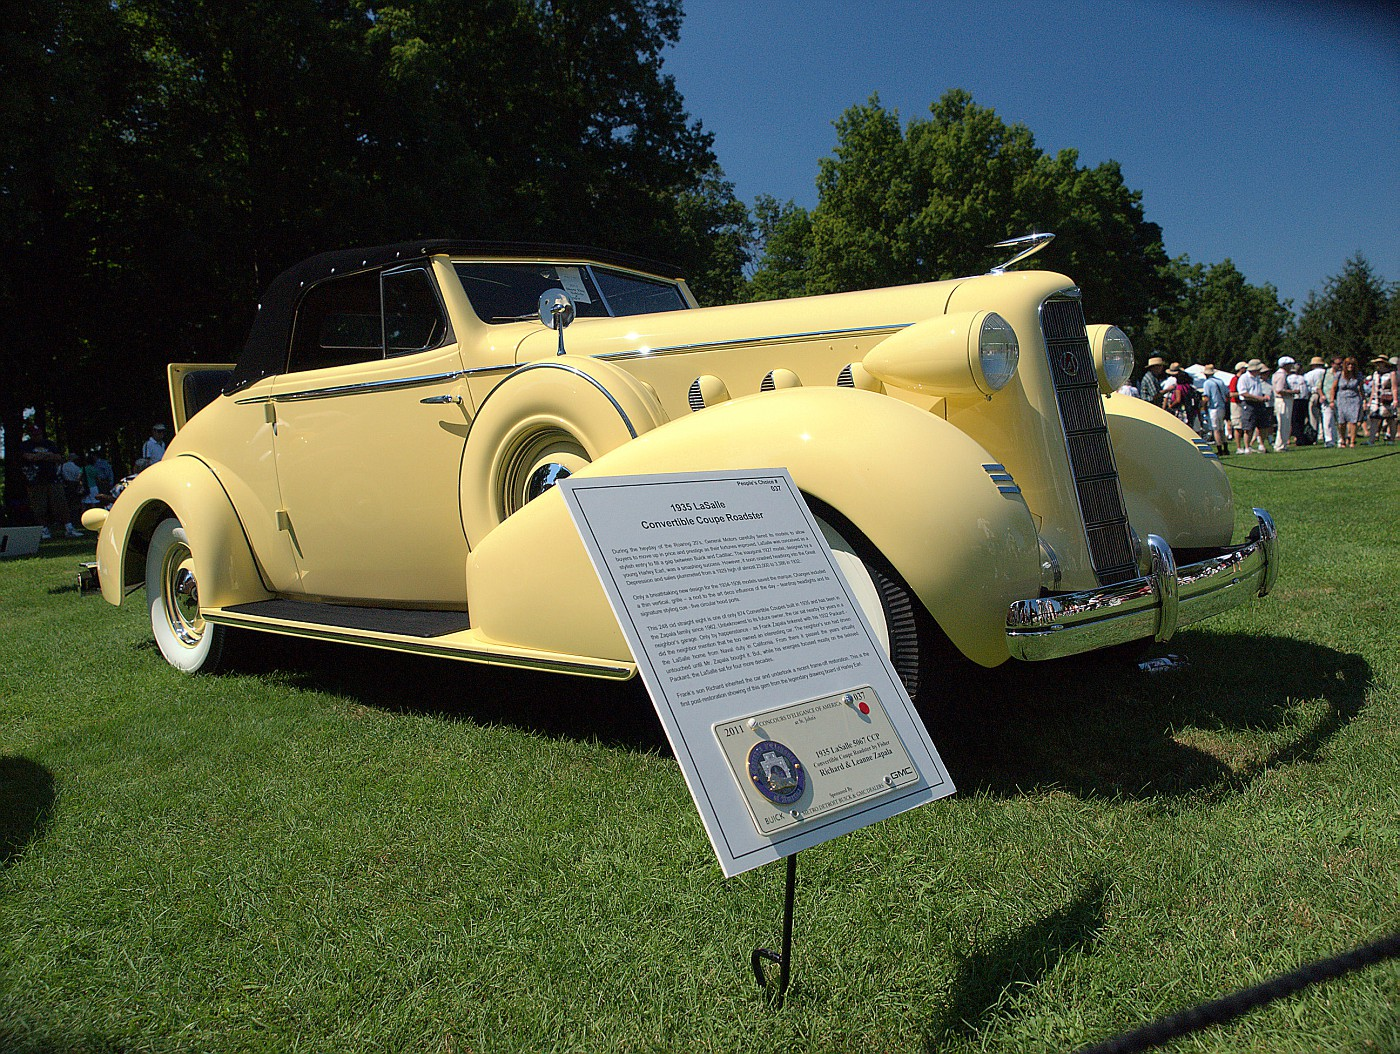 1935 LaSalle 5067 CCP owned by Richard & Leanne Zapala